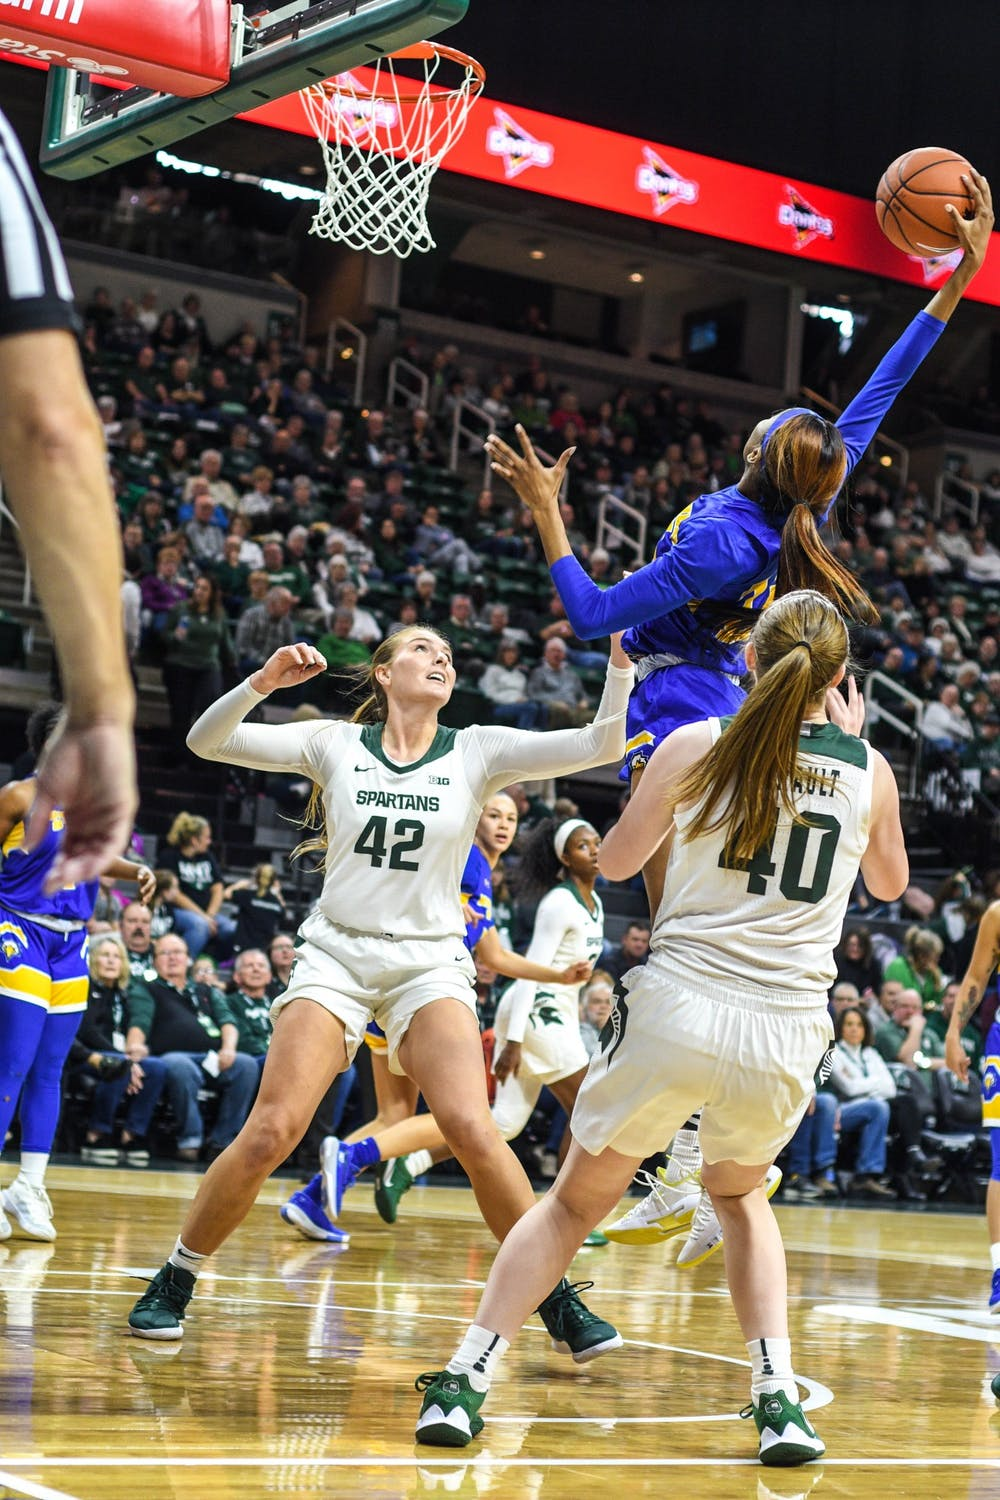 Morehead State's forward Orlandra Humphries shoots the ball against MSU during the game against Morehead State at Breslin Center on Dec. 15, 2019. The Spartans defeated the Eagles, 93-48.